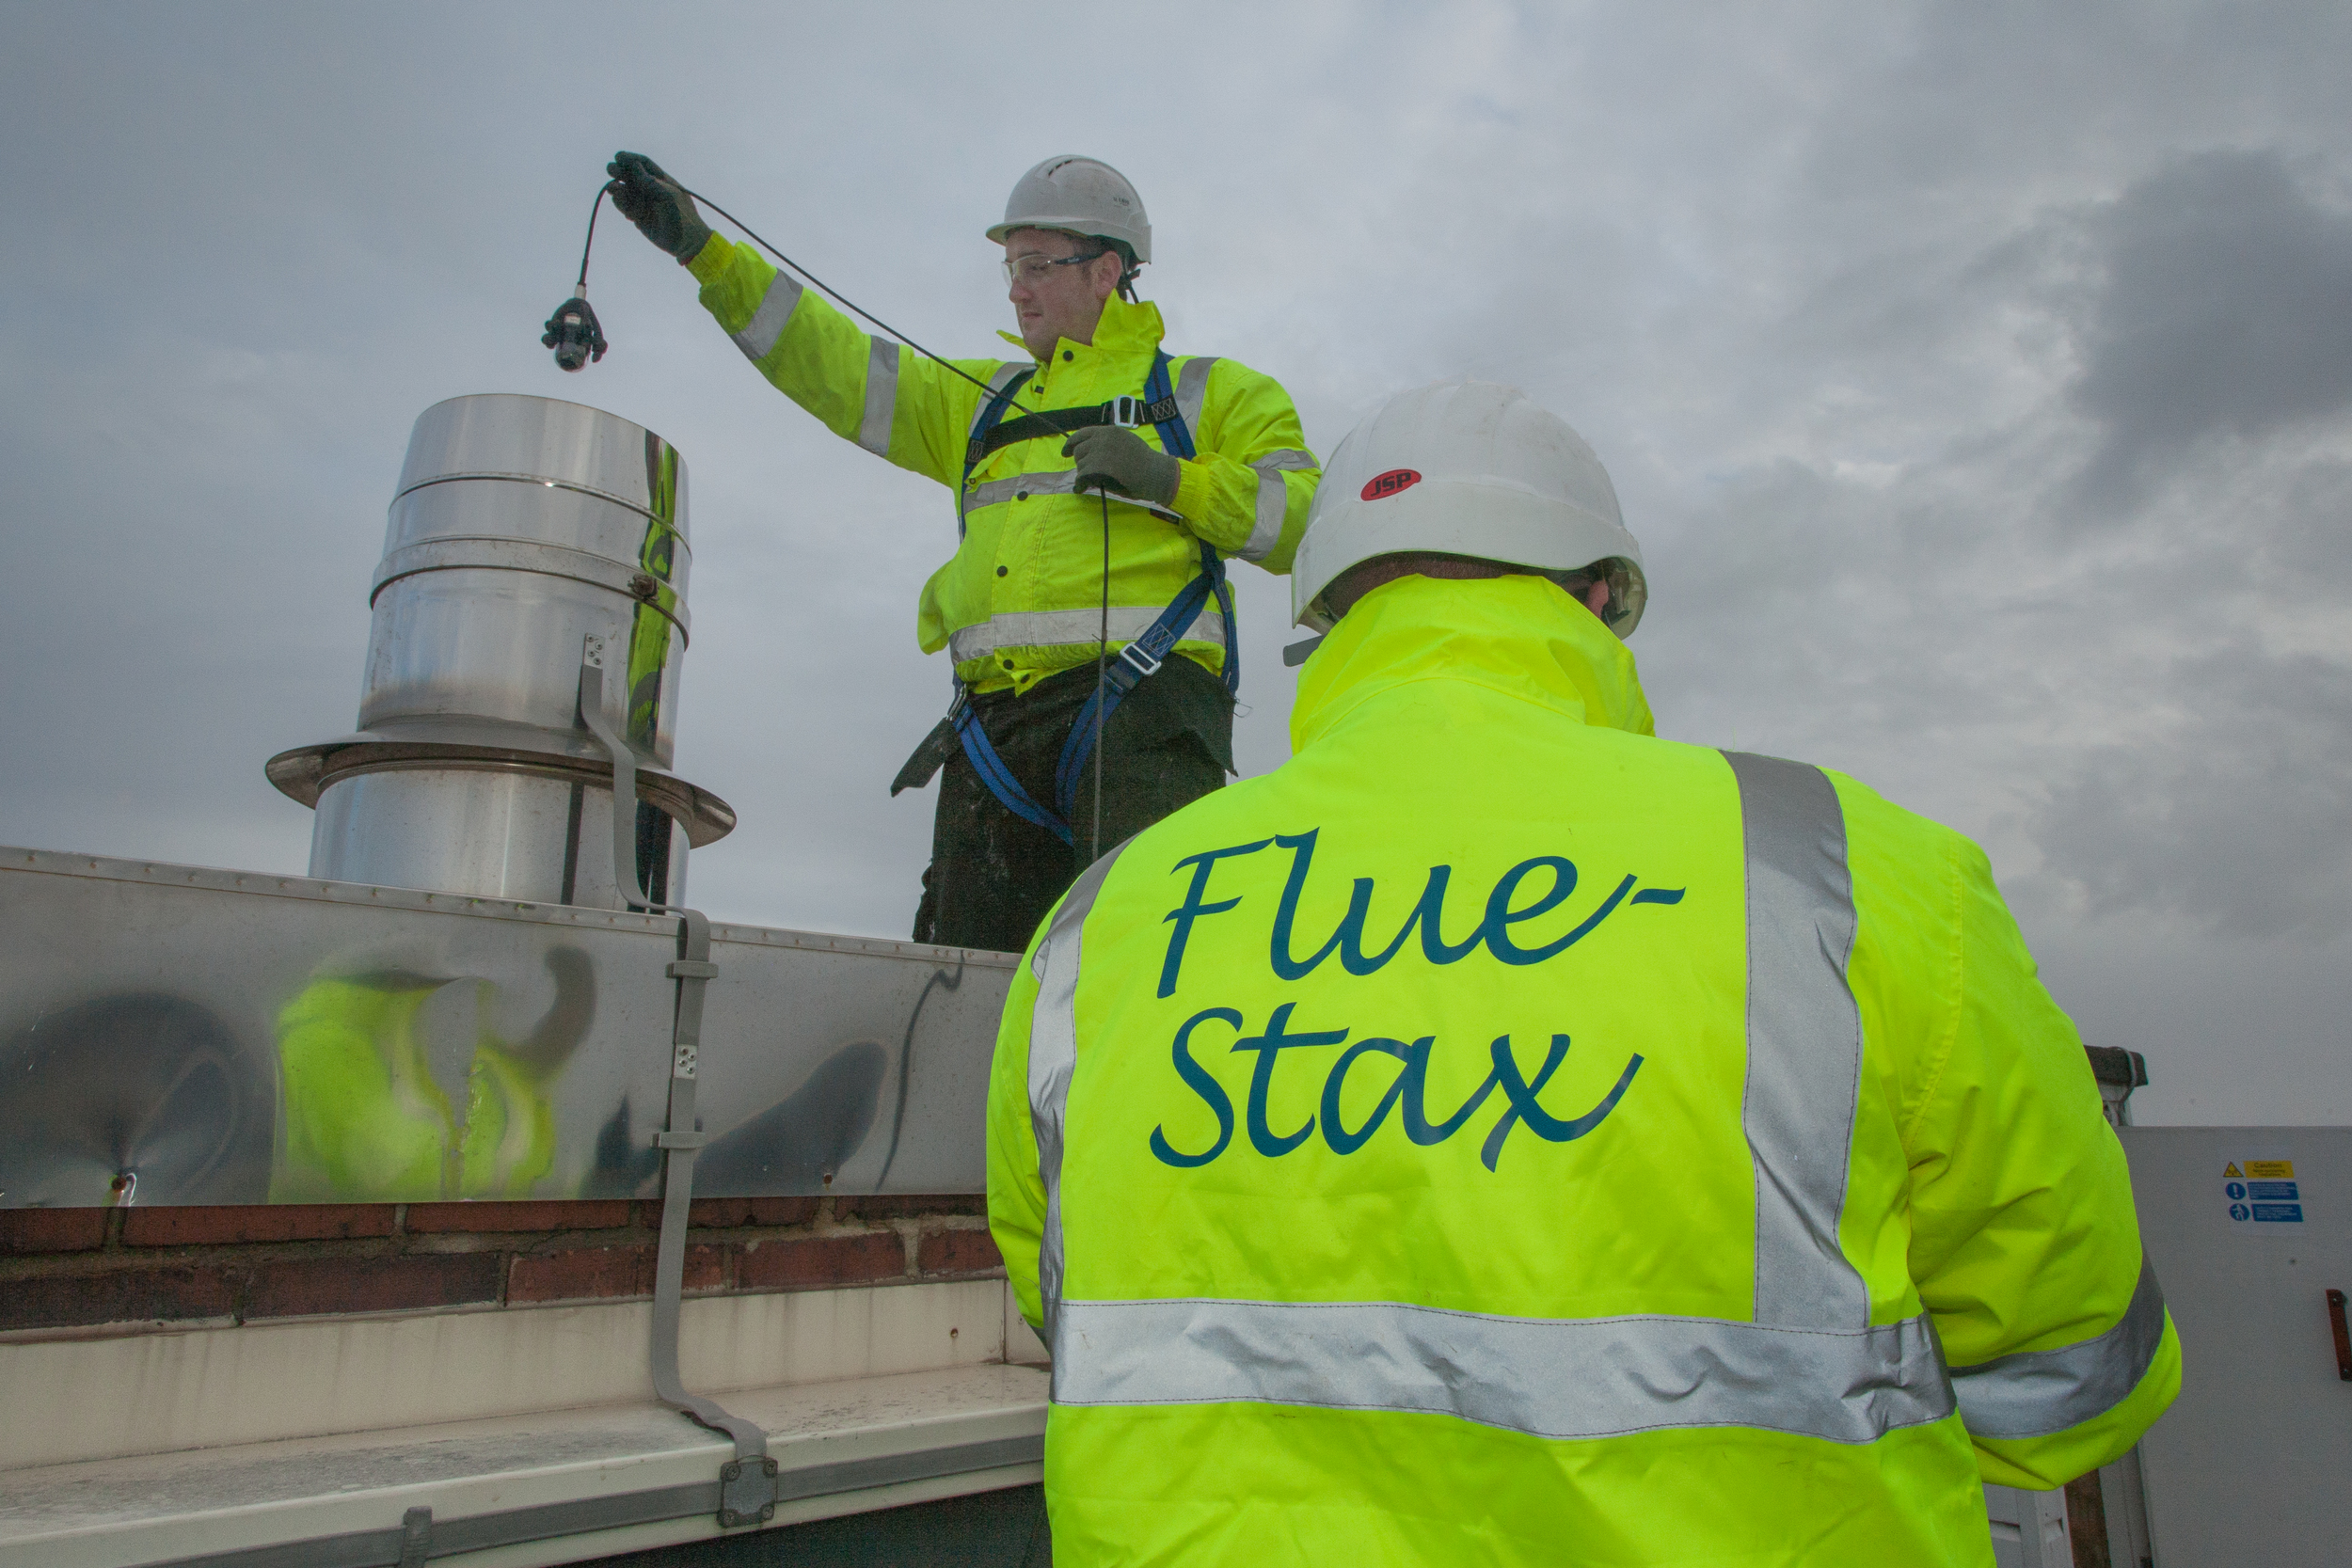 Flue Inspection by Flustax, Premier Inn Hotel, Bournemouth - commercial product photography by Rick McEvoy